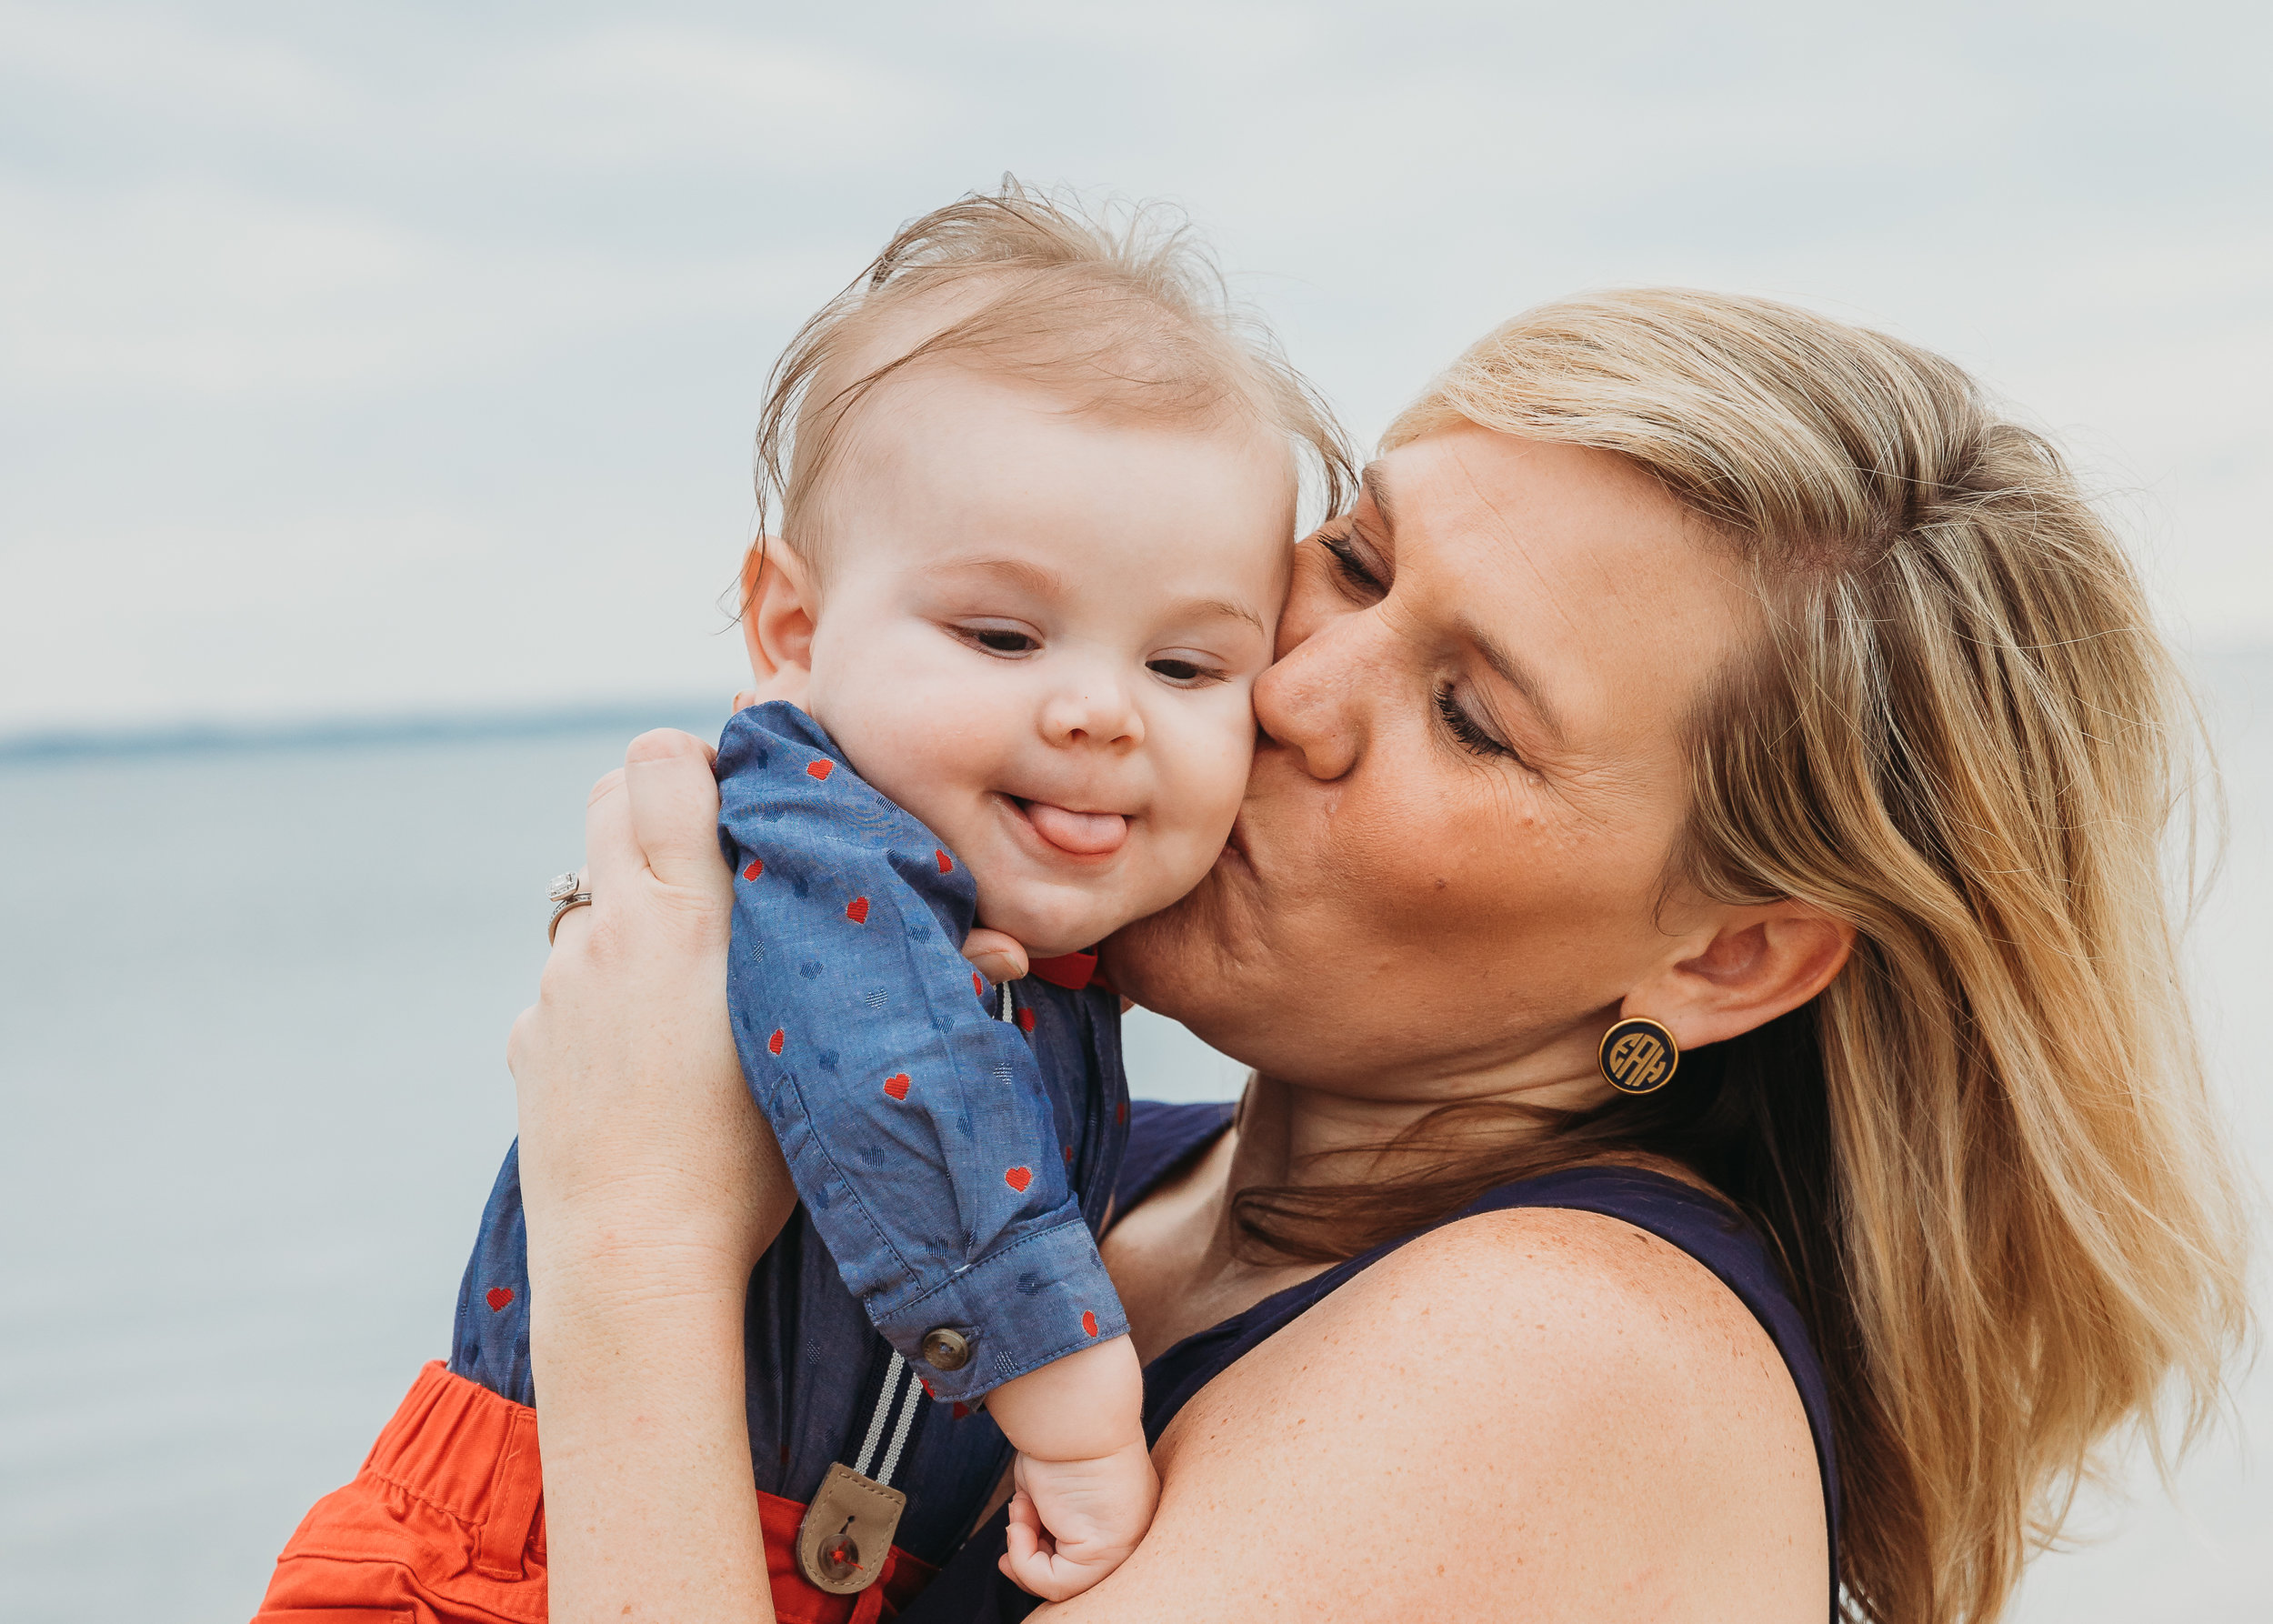 Mama kissing 5-month-old baby in bowtie. Boston family photographer. Beach family photos.